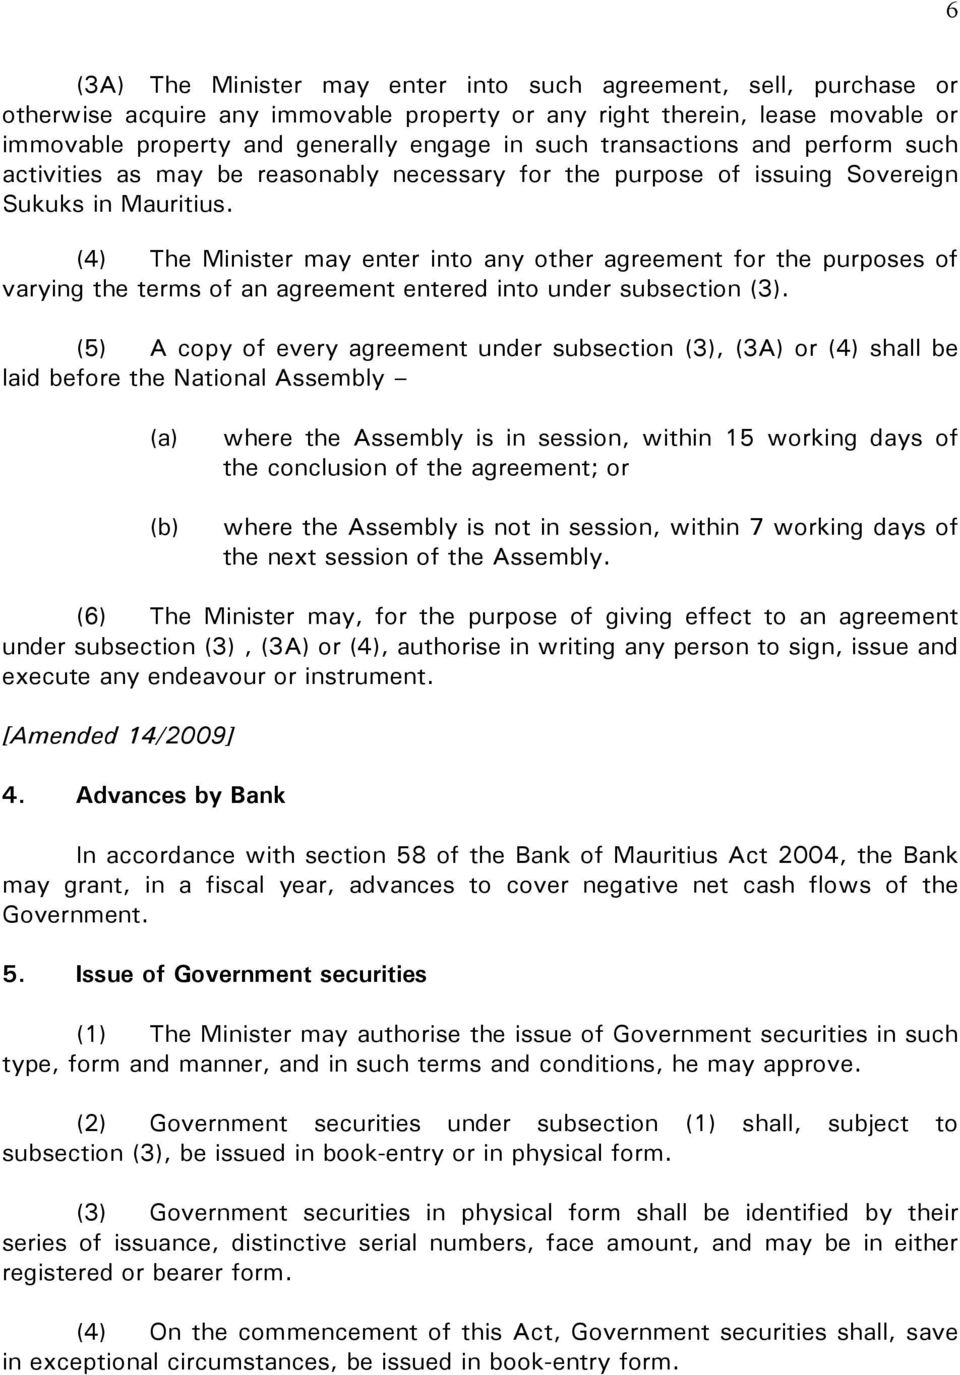 (4) The Minister may enter into any other agreement for the purposes of varying the terms of an agreement entered into under subsection (3).